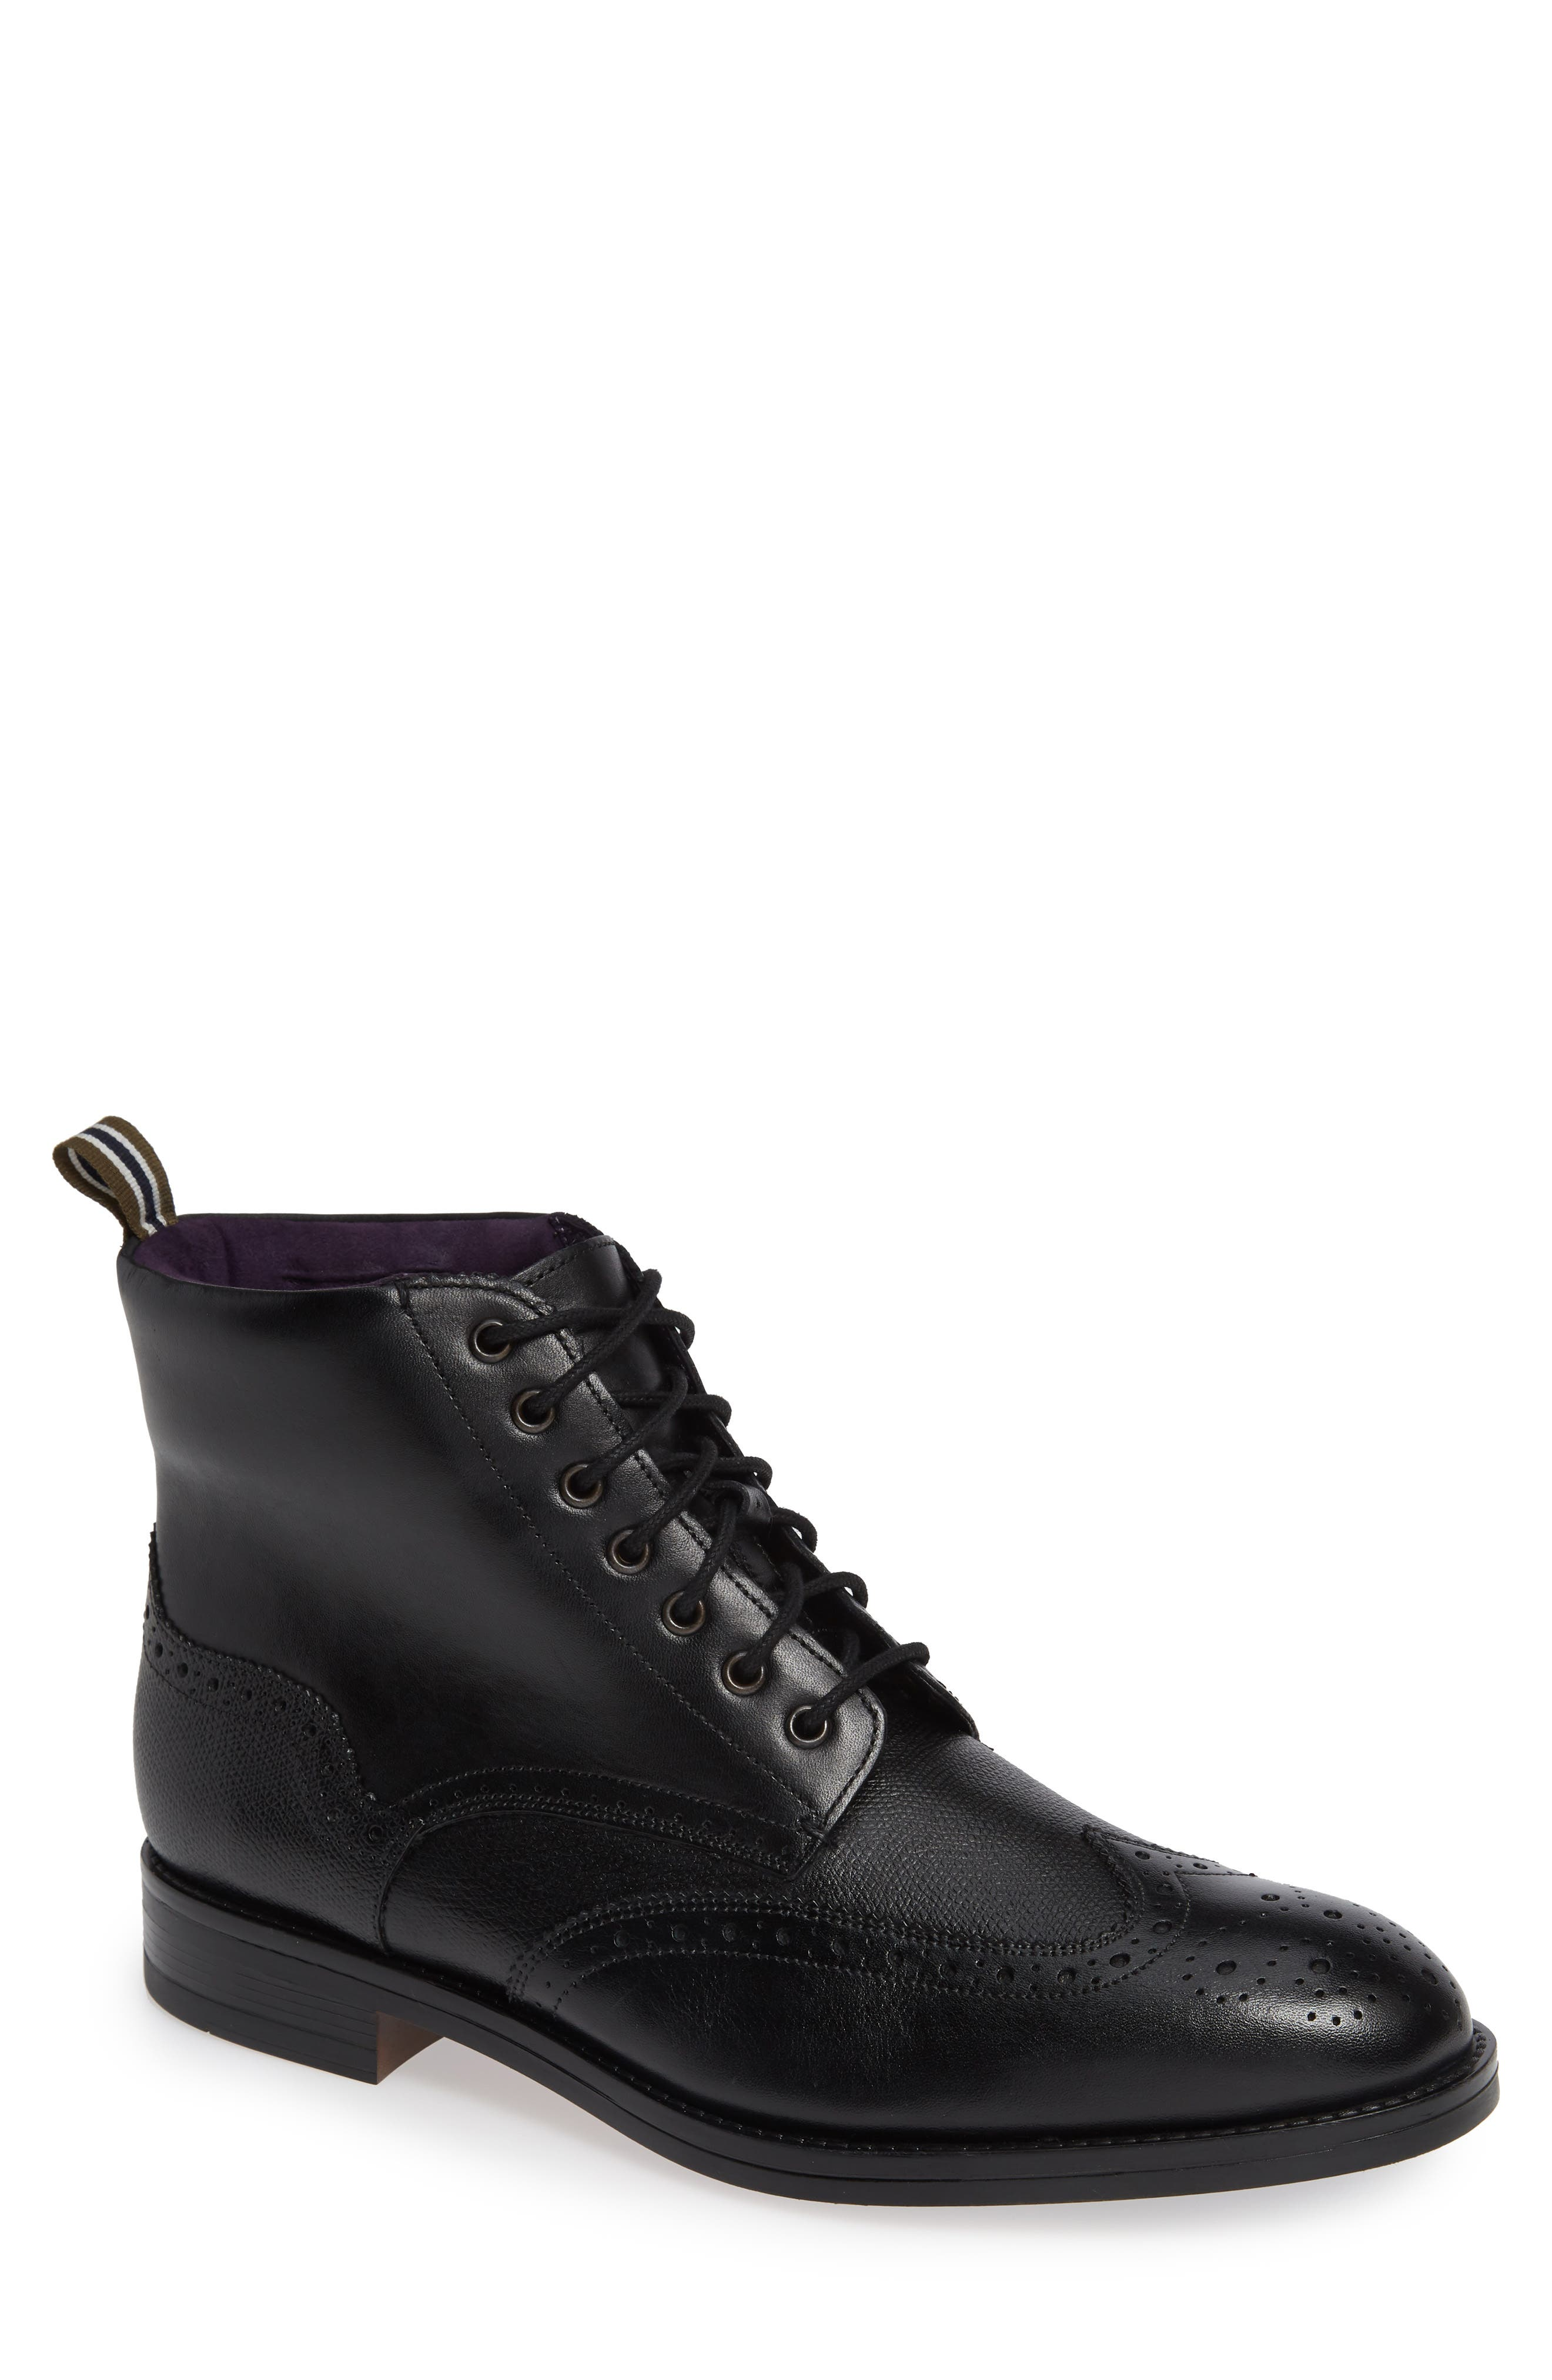 TED BAKER LONDON, Twrens Wingtip Boot, Main thumbnail 1, color, BLACK LEATHER